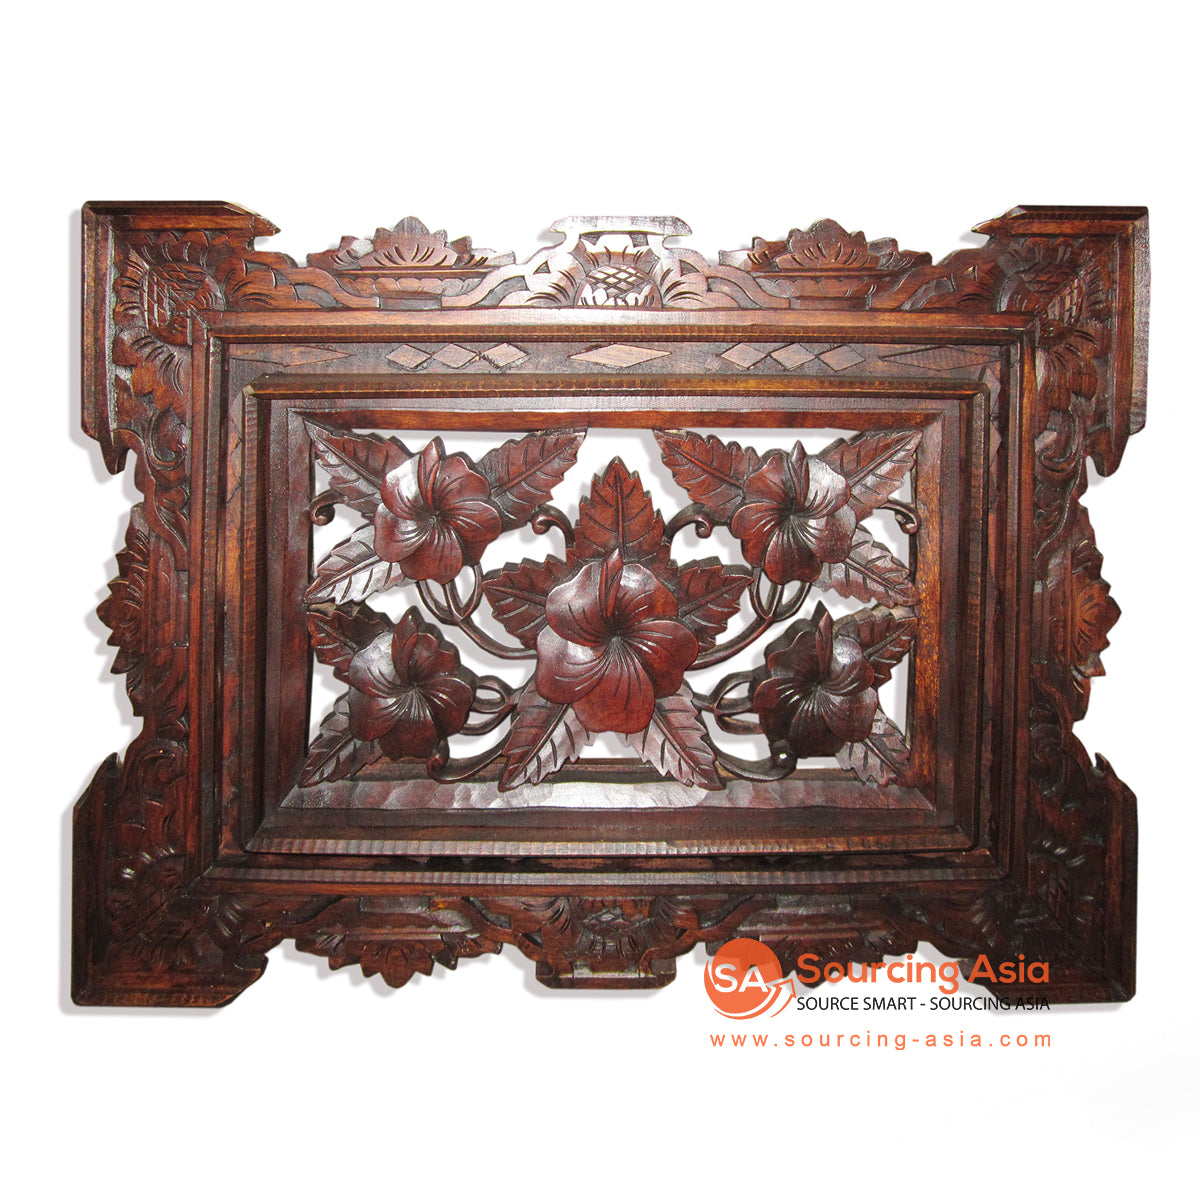 GUR005-B WOODEN WALL DECORATION WITH CARVING